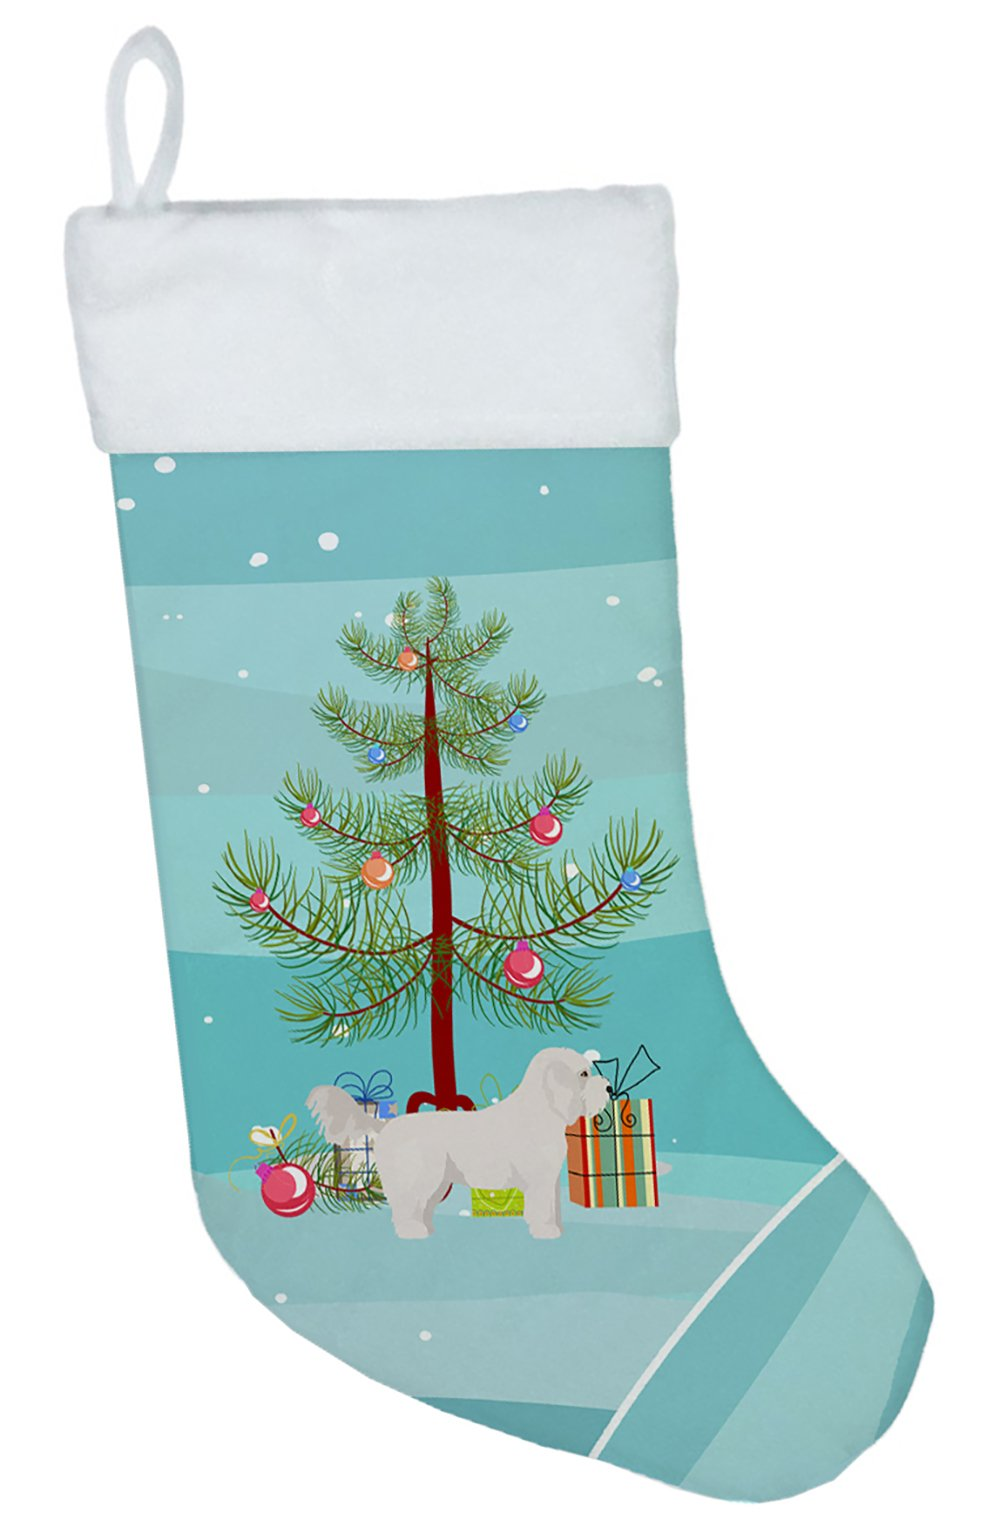 Bichpoo White Christmas Tree Christmas Stocking CK3805CS by Caroline's Treasures